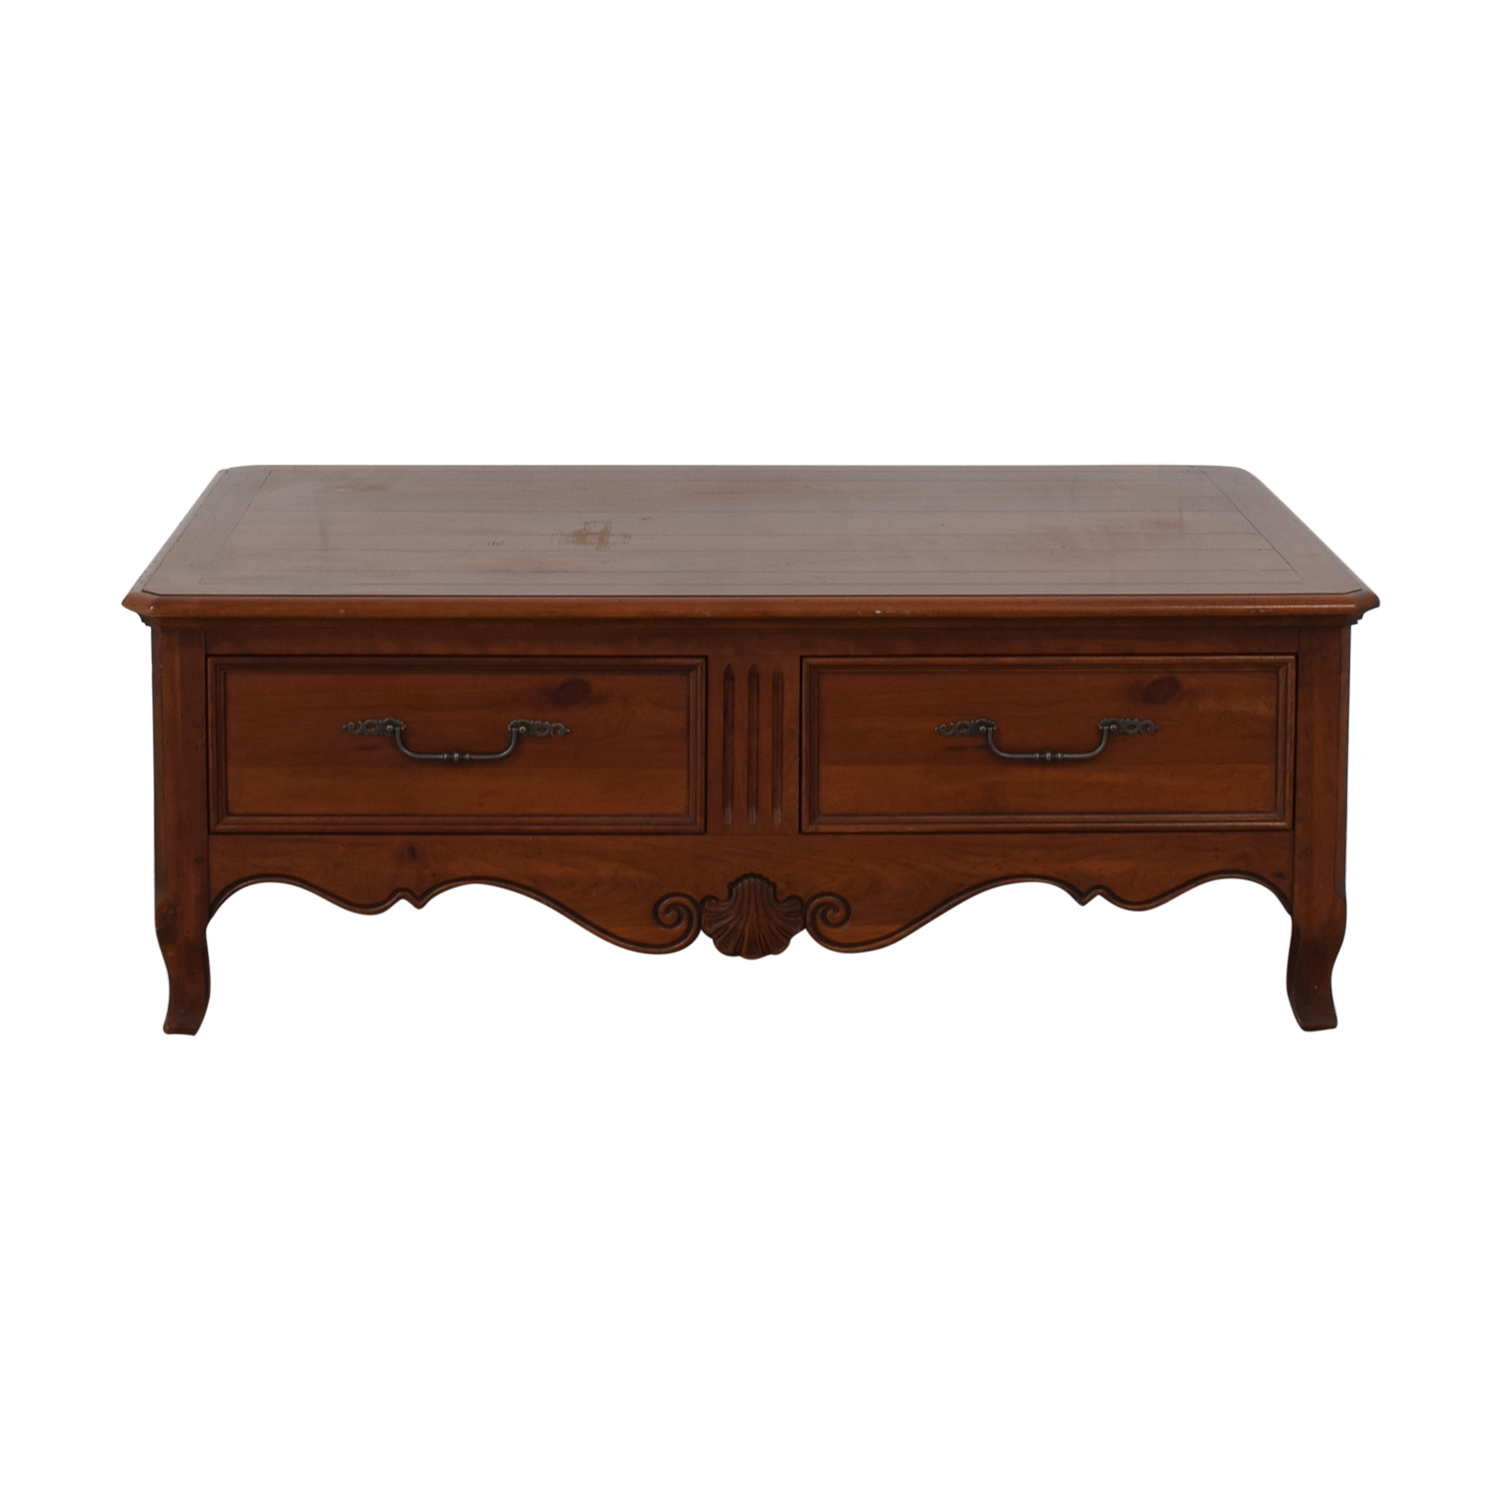 Ethan Allen Storage Coffee Table / Coffee Tables